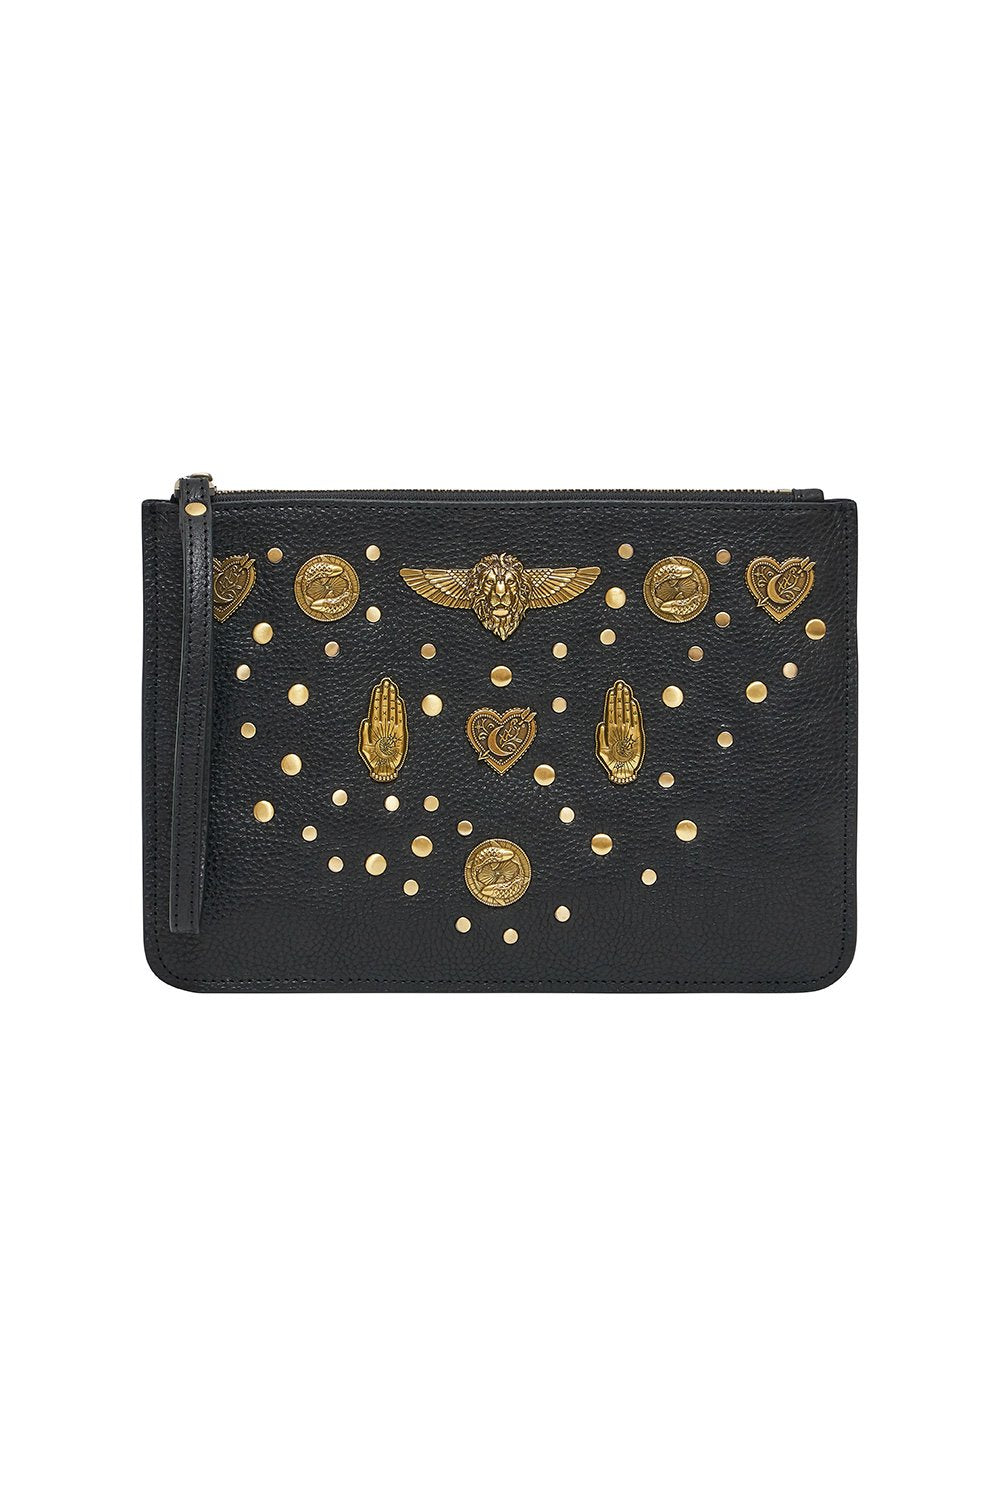 STUDDED LEATHER CLUTCH SOLID BLACK